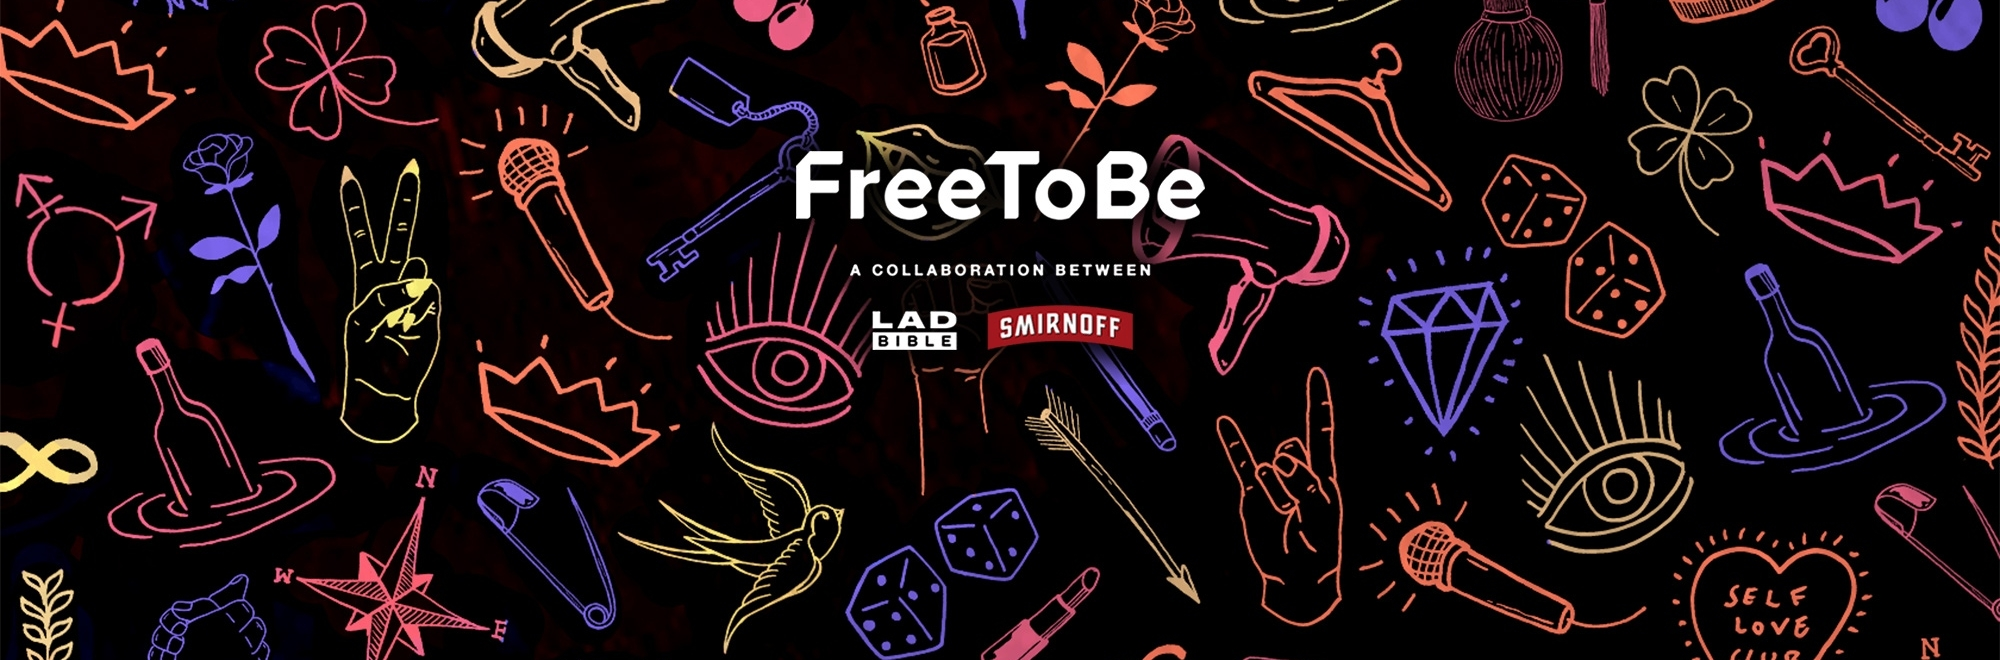 Diversity is the word in these latest collaborations between Smirnoff and LADbible